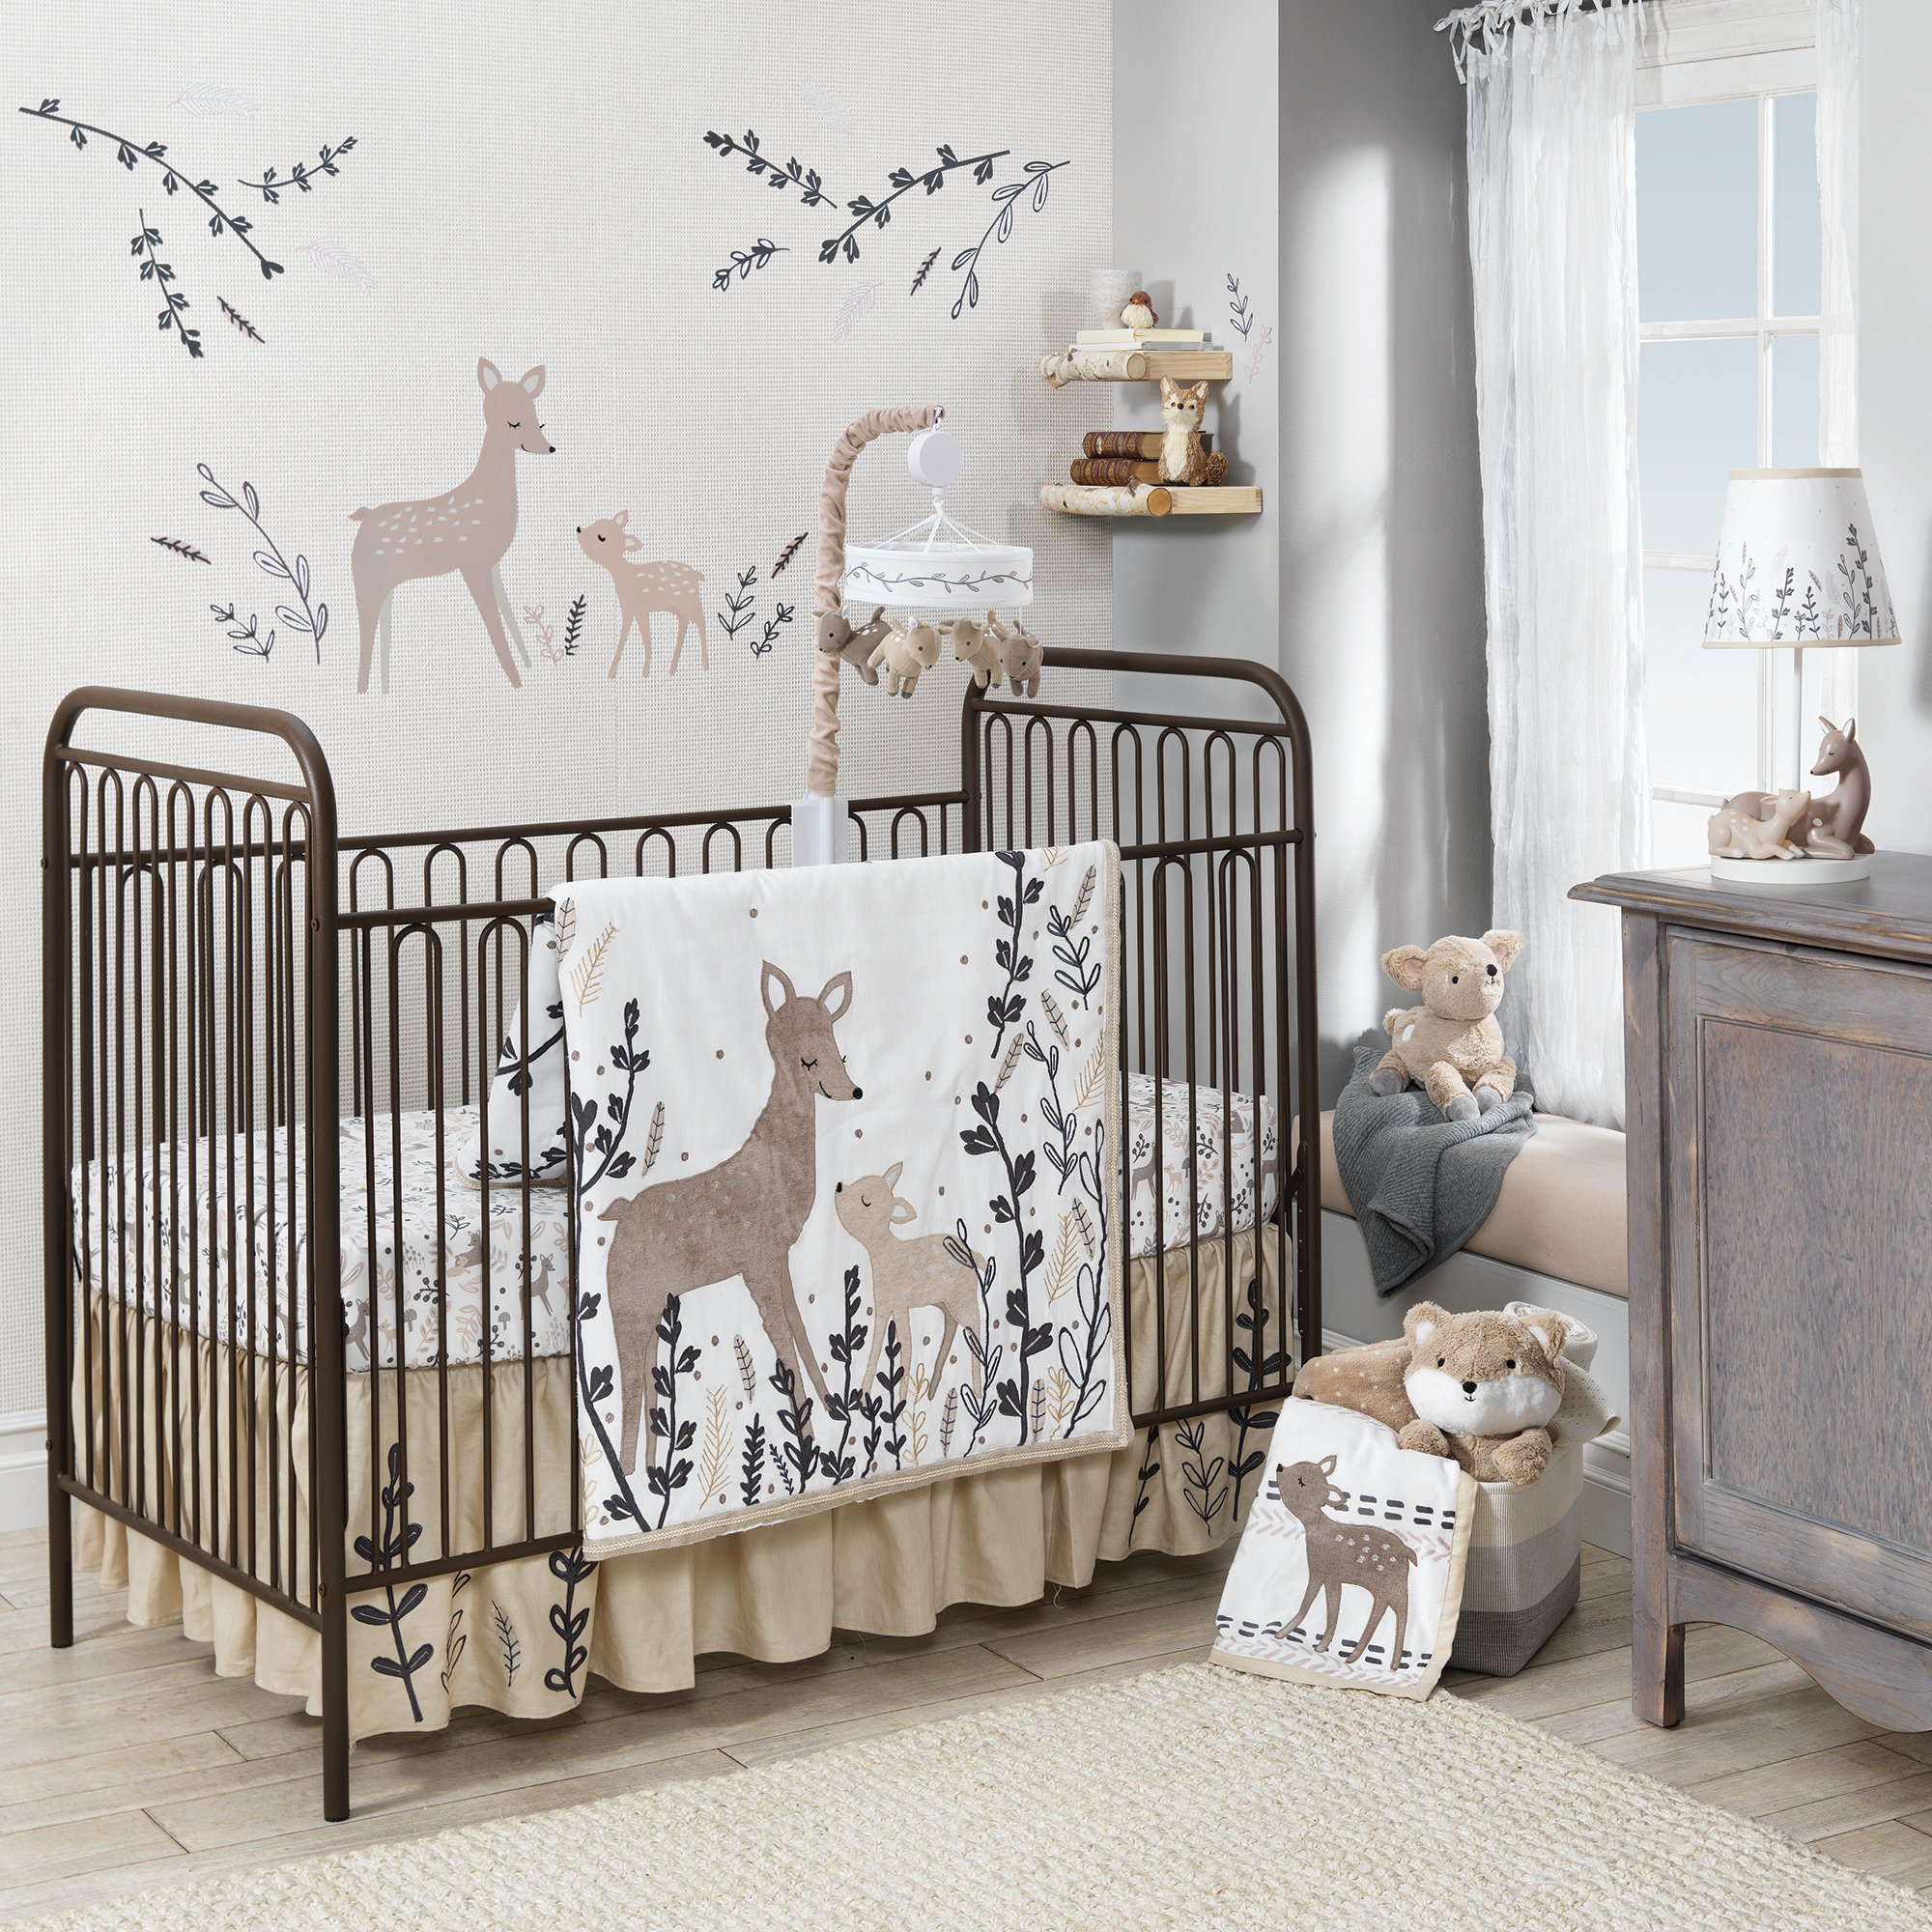 garden seeds upholstered shipping cribs cream little free overstock valley lotus metal piper home product black crib today rowan